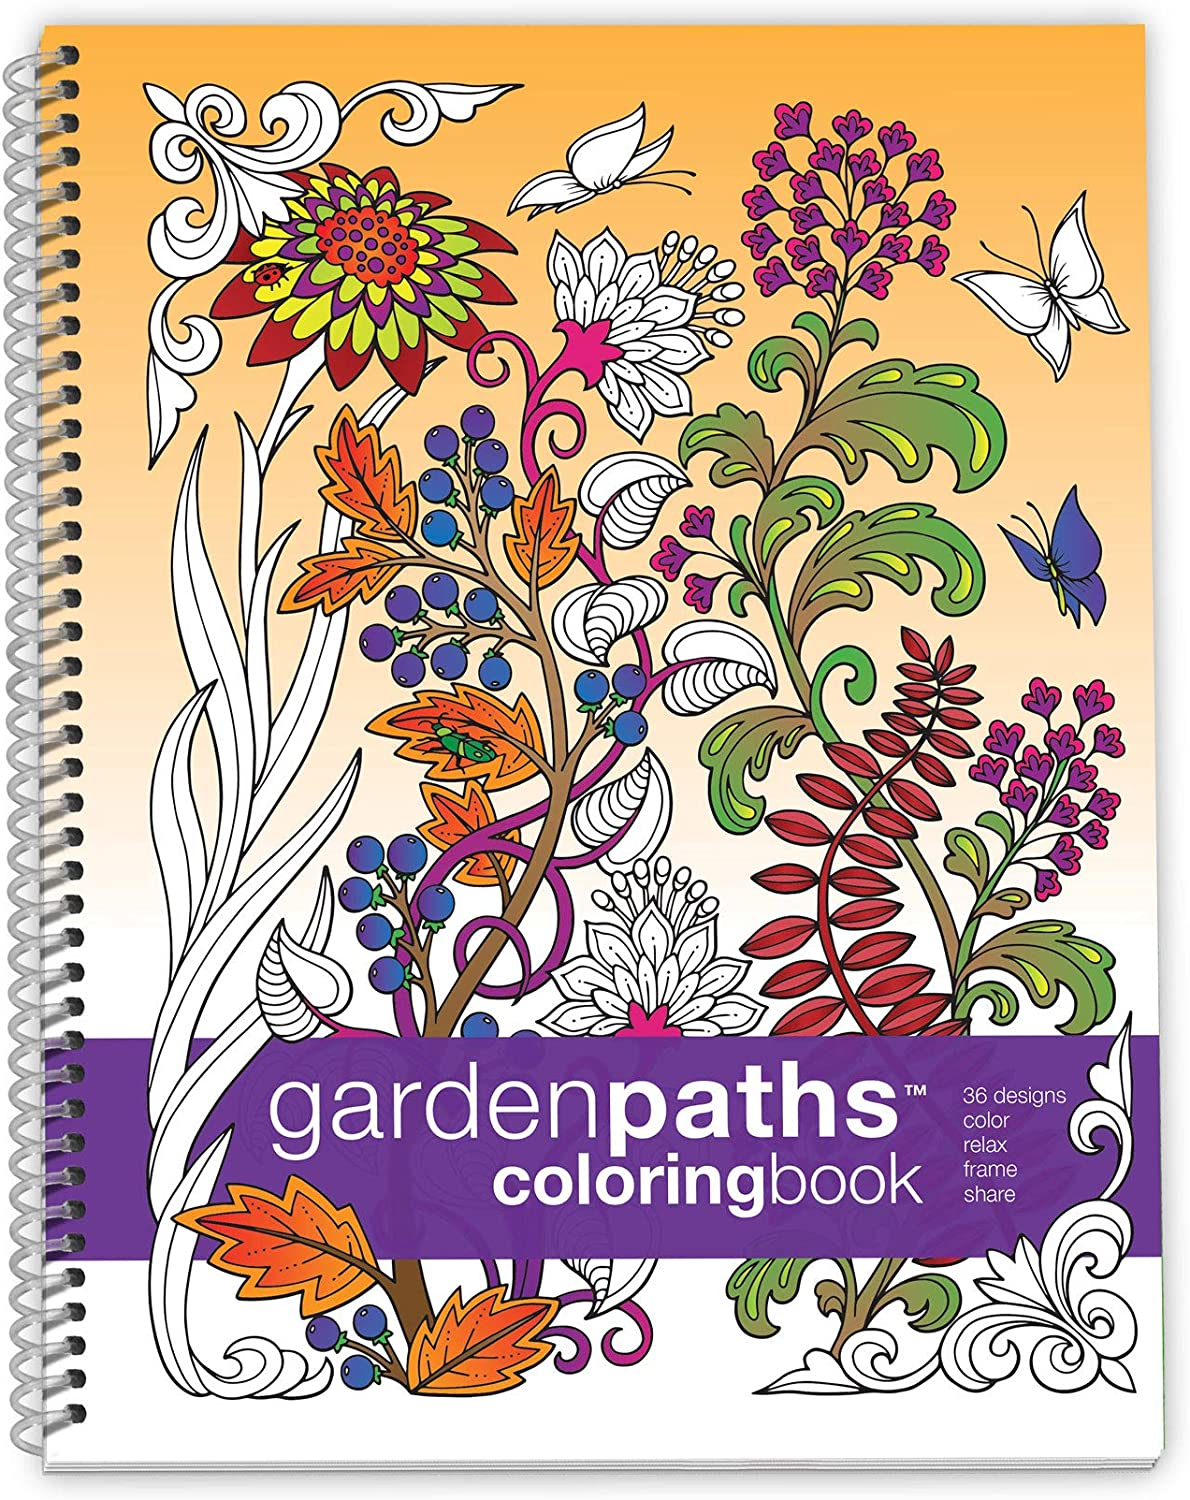 Action Publishing Coloring Book: Garden Paths · Garden Scenes and Intricate Animal Designs for Stress Relief, Relaxation and Creativity · Large Sidebound (8.5 x 11 inches)